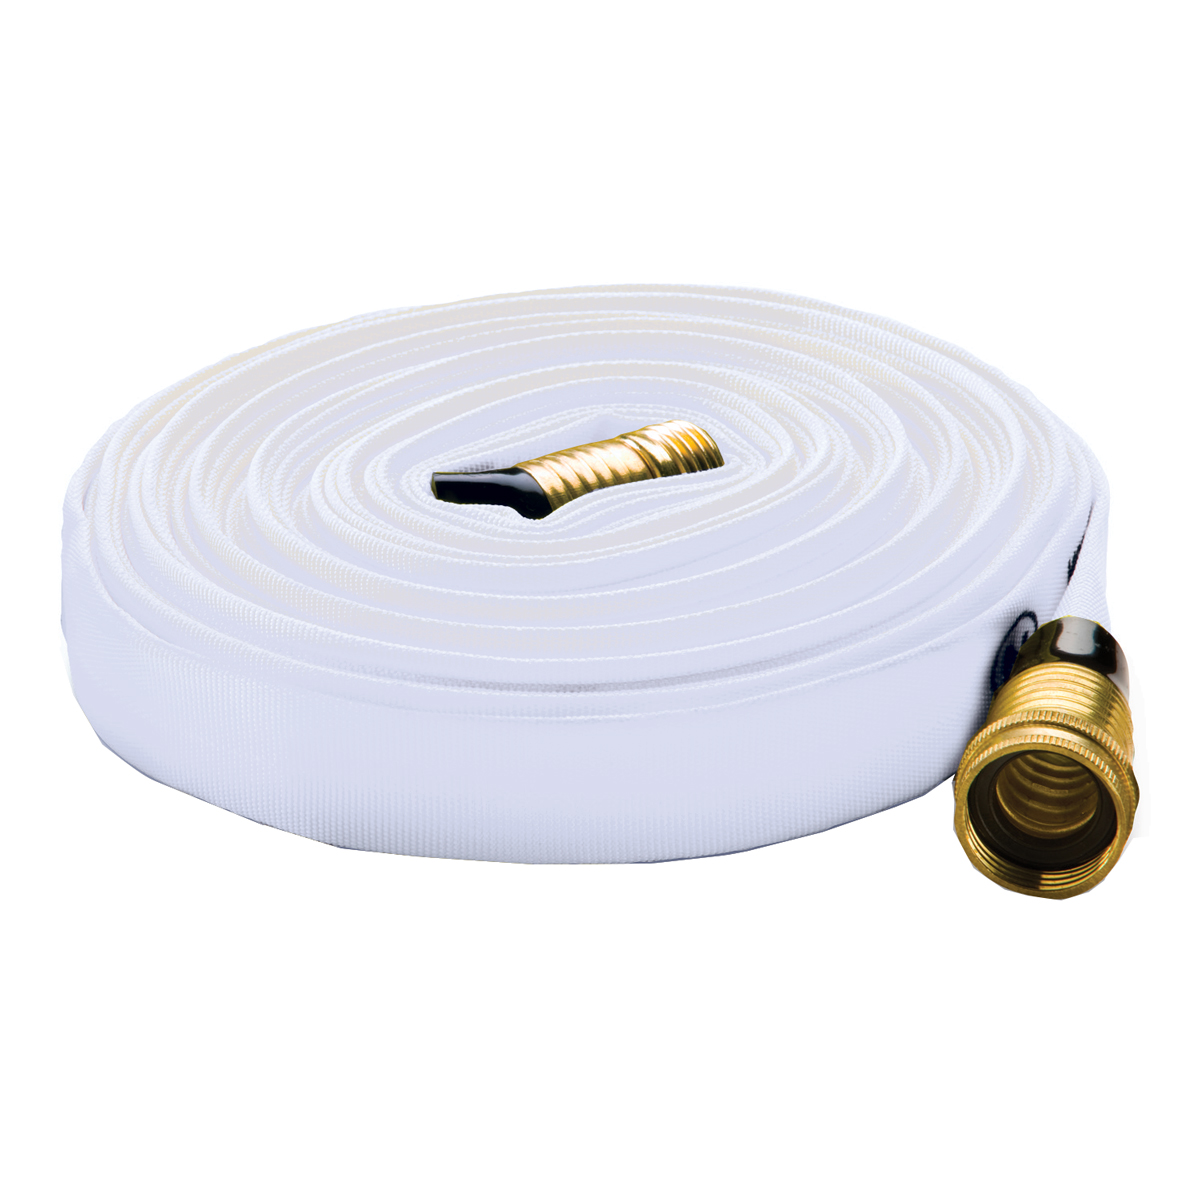 Compact Water Supply Hose image